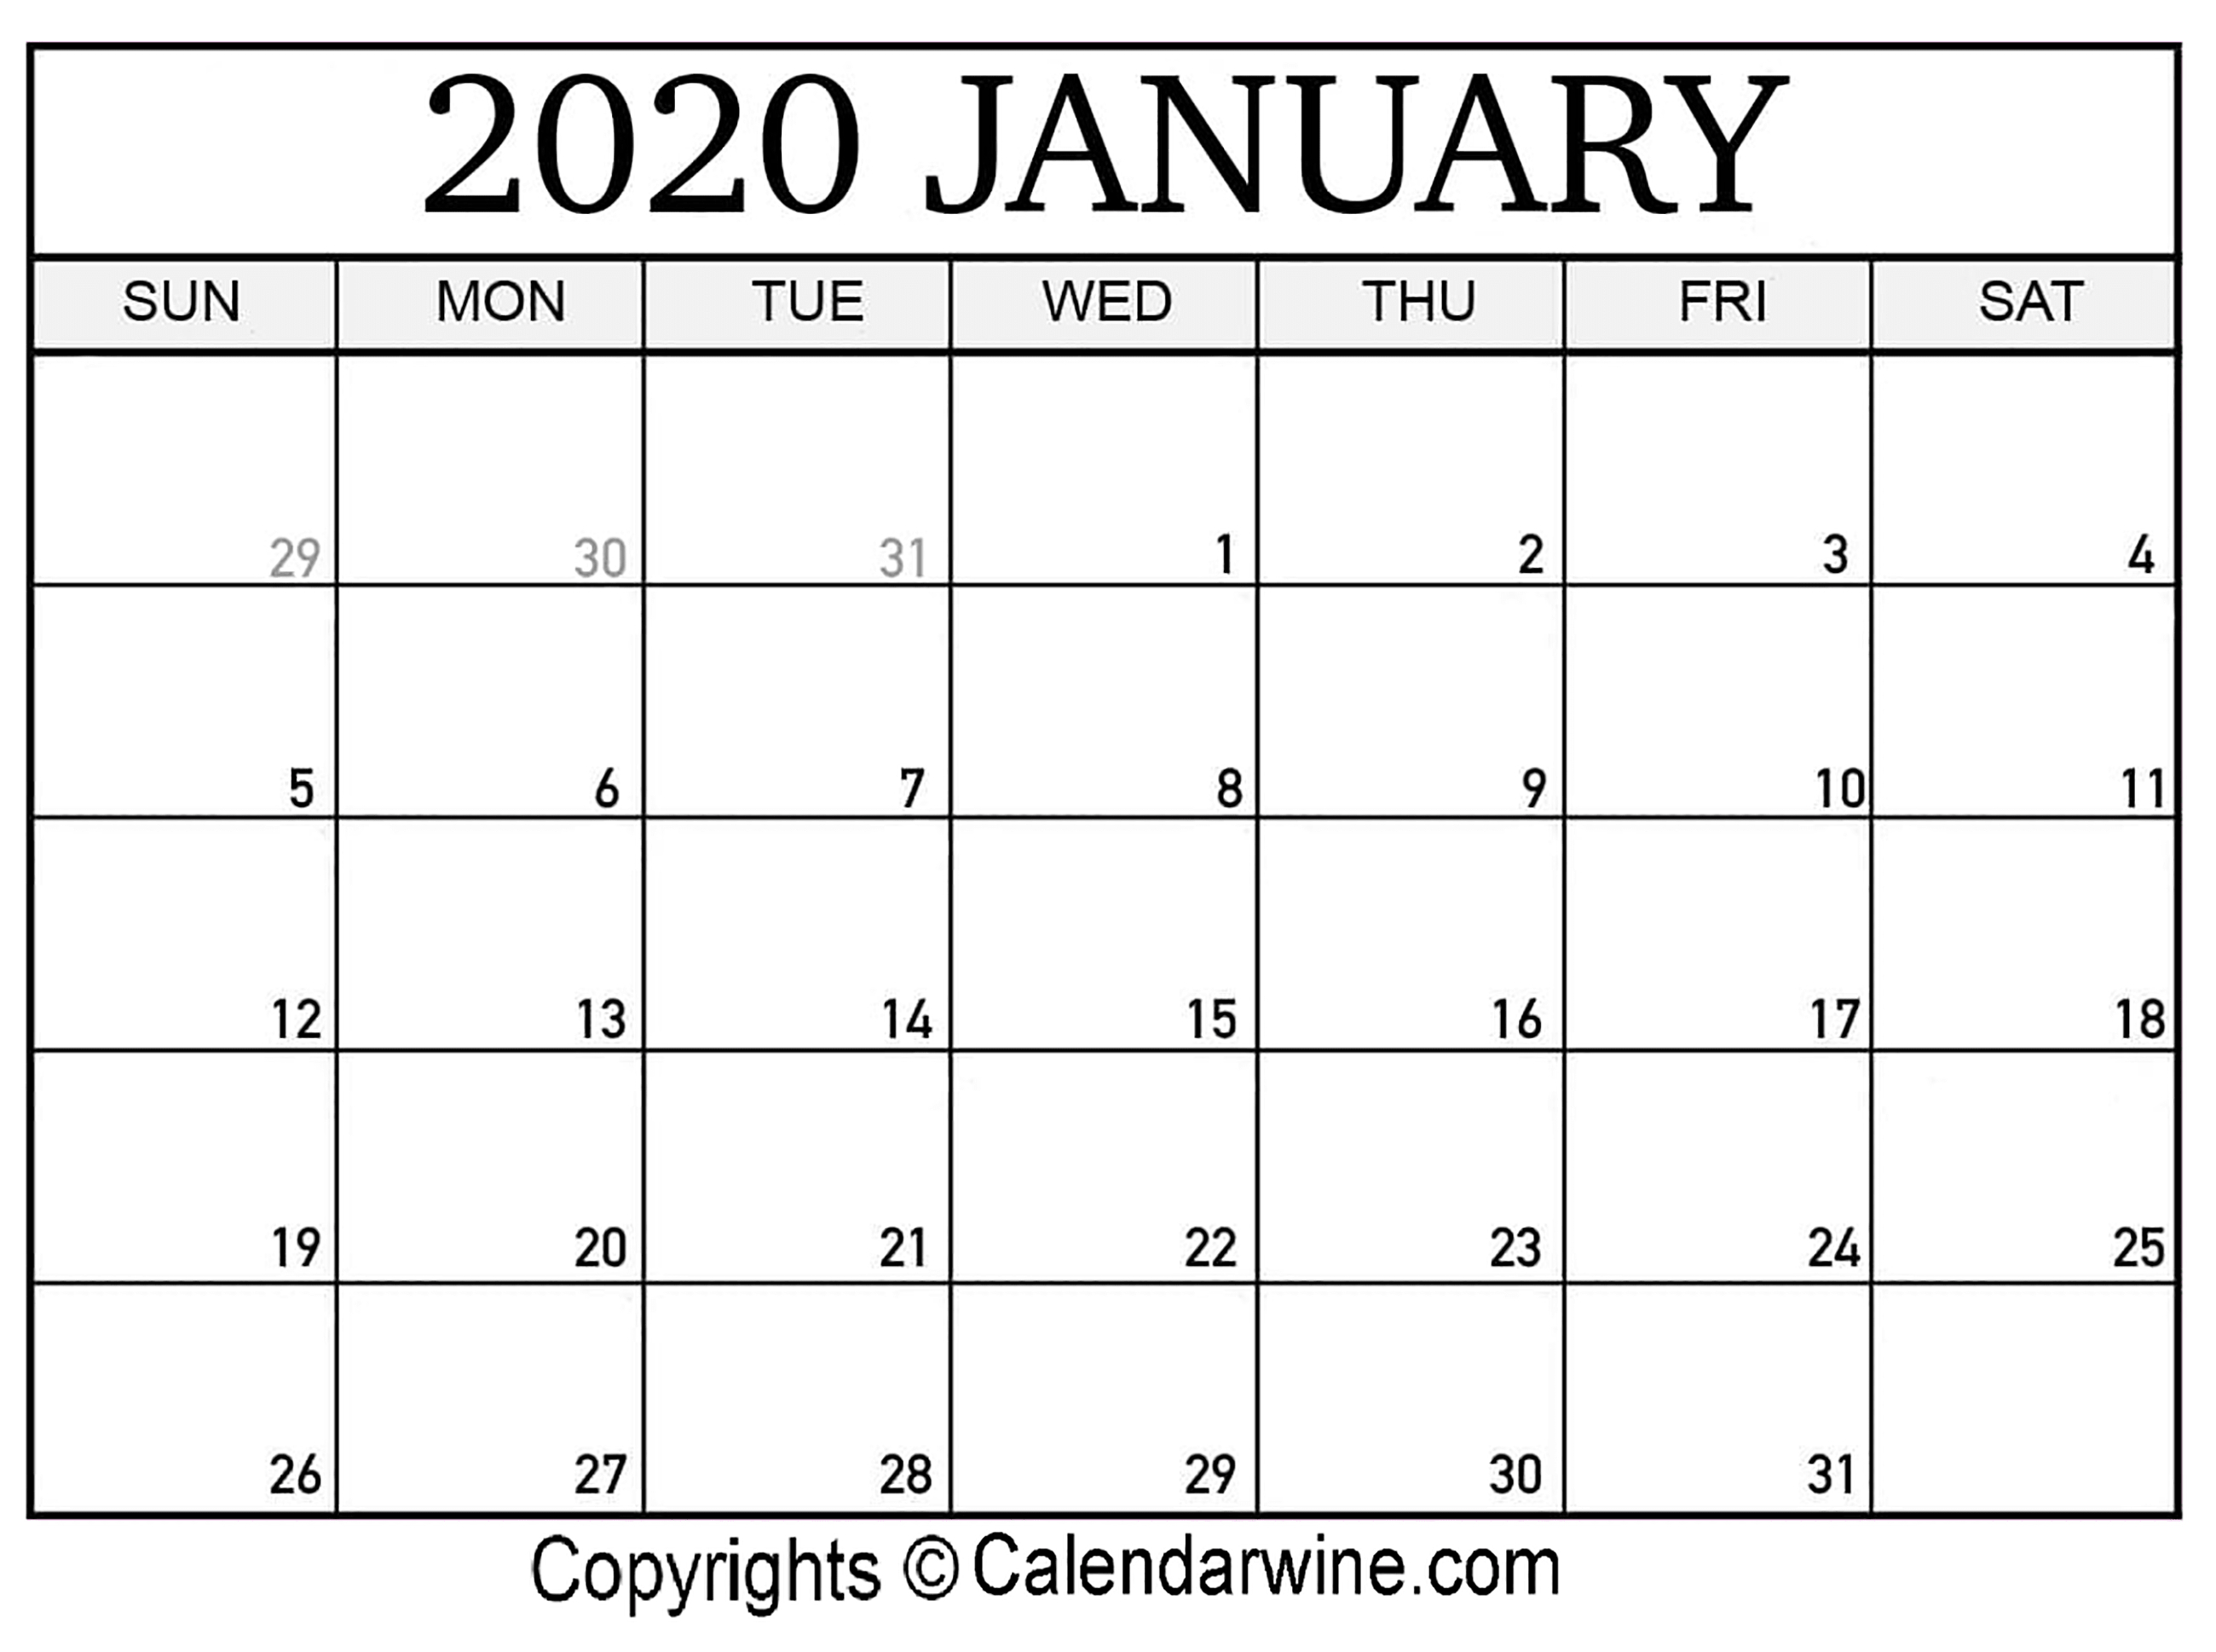 January 2020 Printable Calendar Templates | Calendar Wine